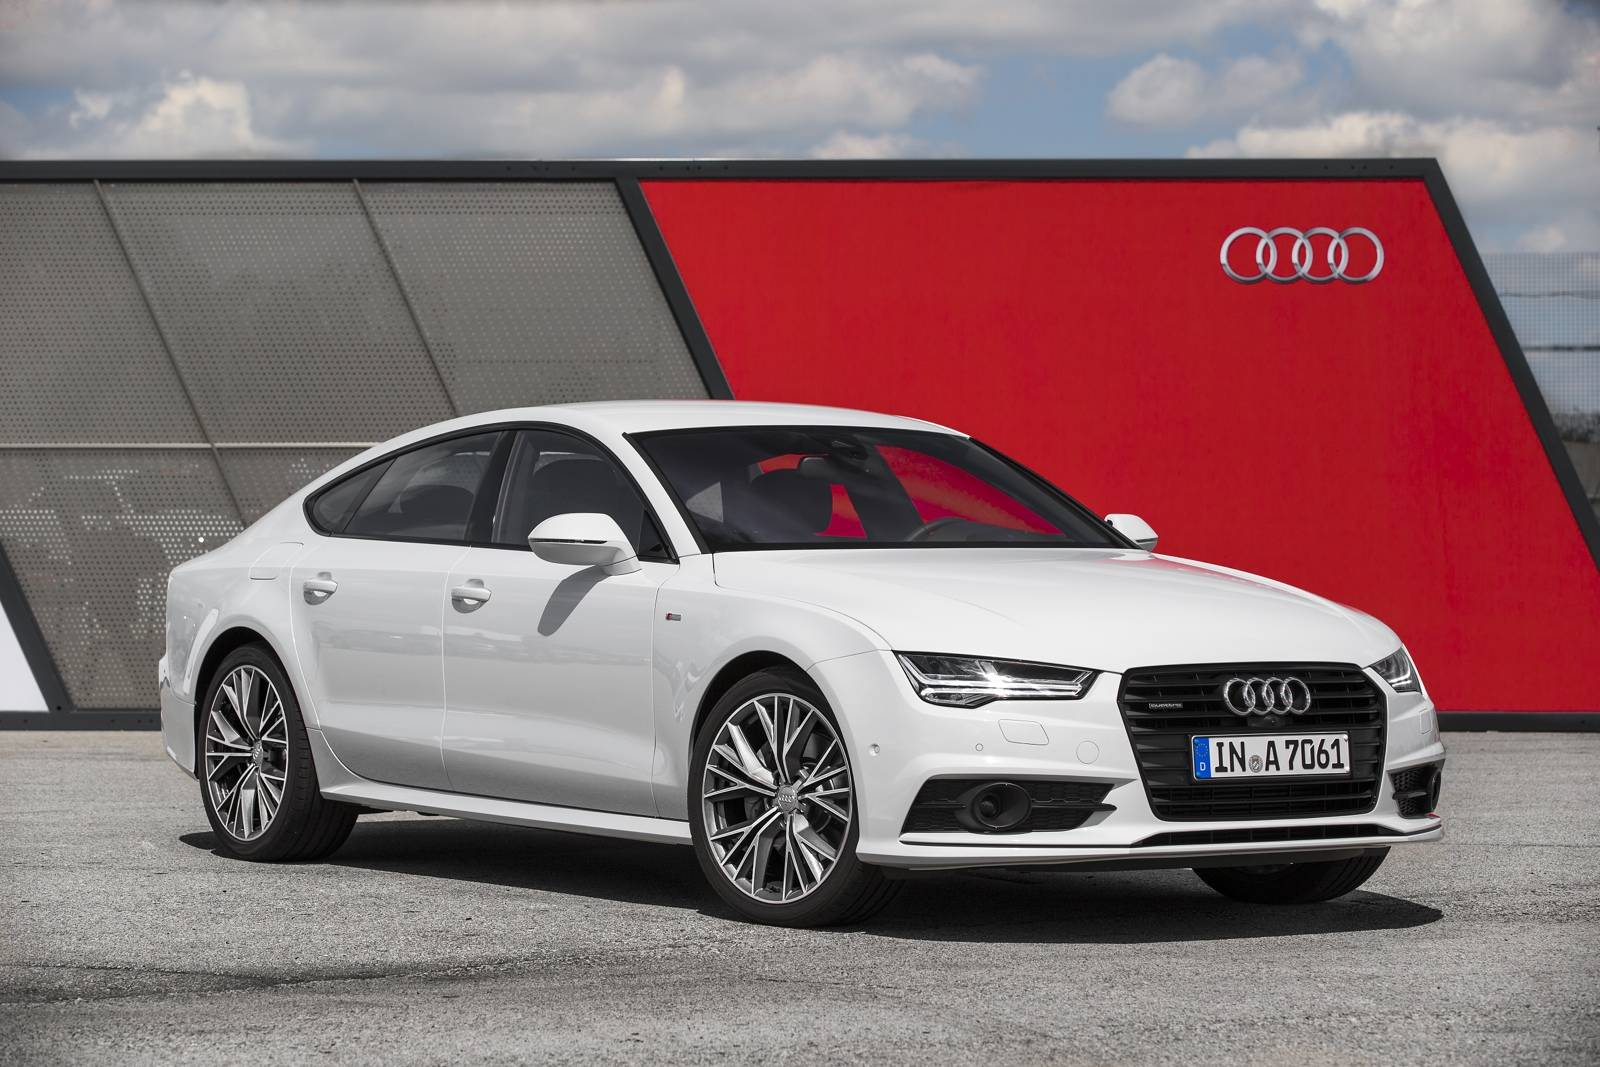 Audi Recalls 80,000 Cars with Defect in Fuel Injection System ...